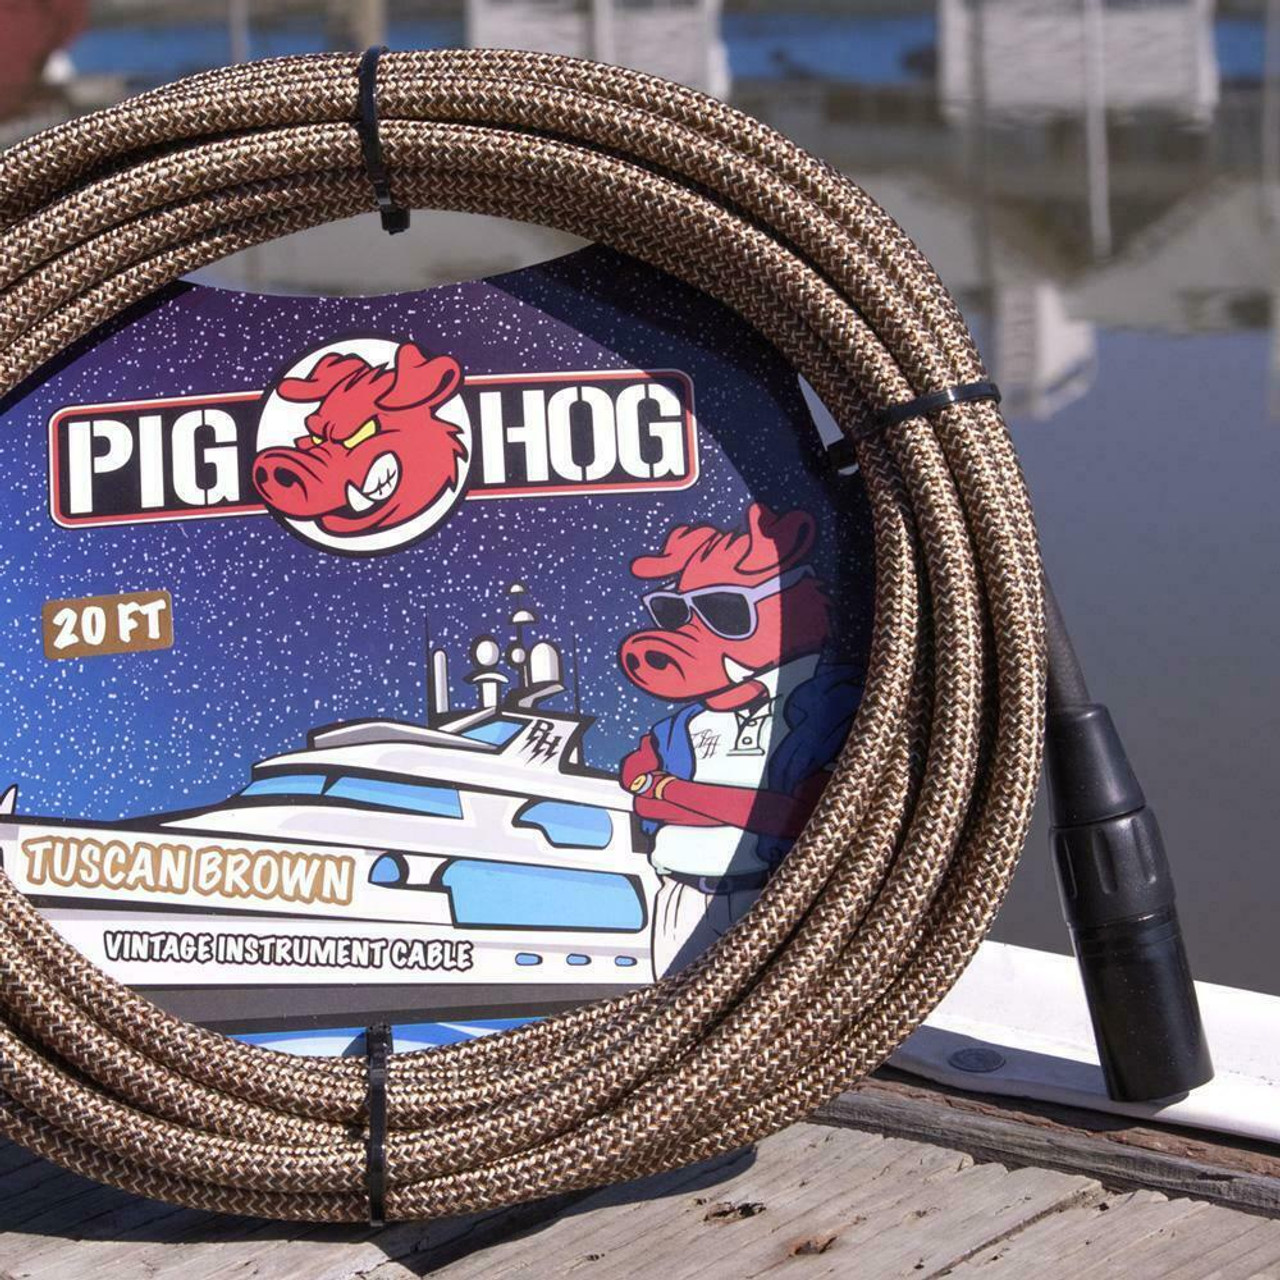 Pig Hog PHM20TBR Tuscan Brown Woven High Performance XLR Microphone Cable, 20 Ft